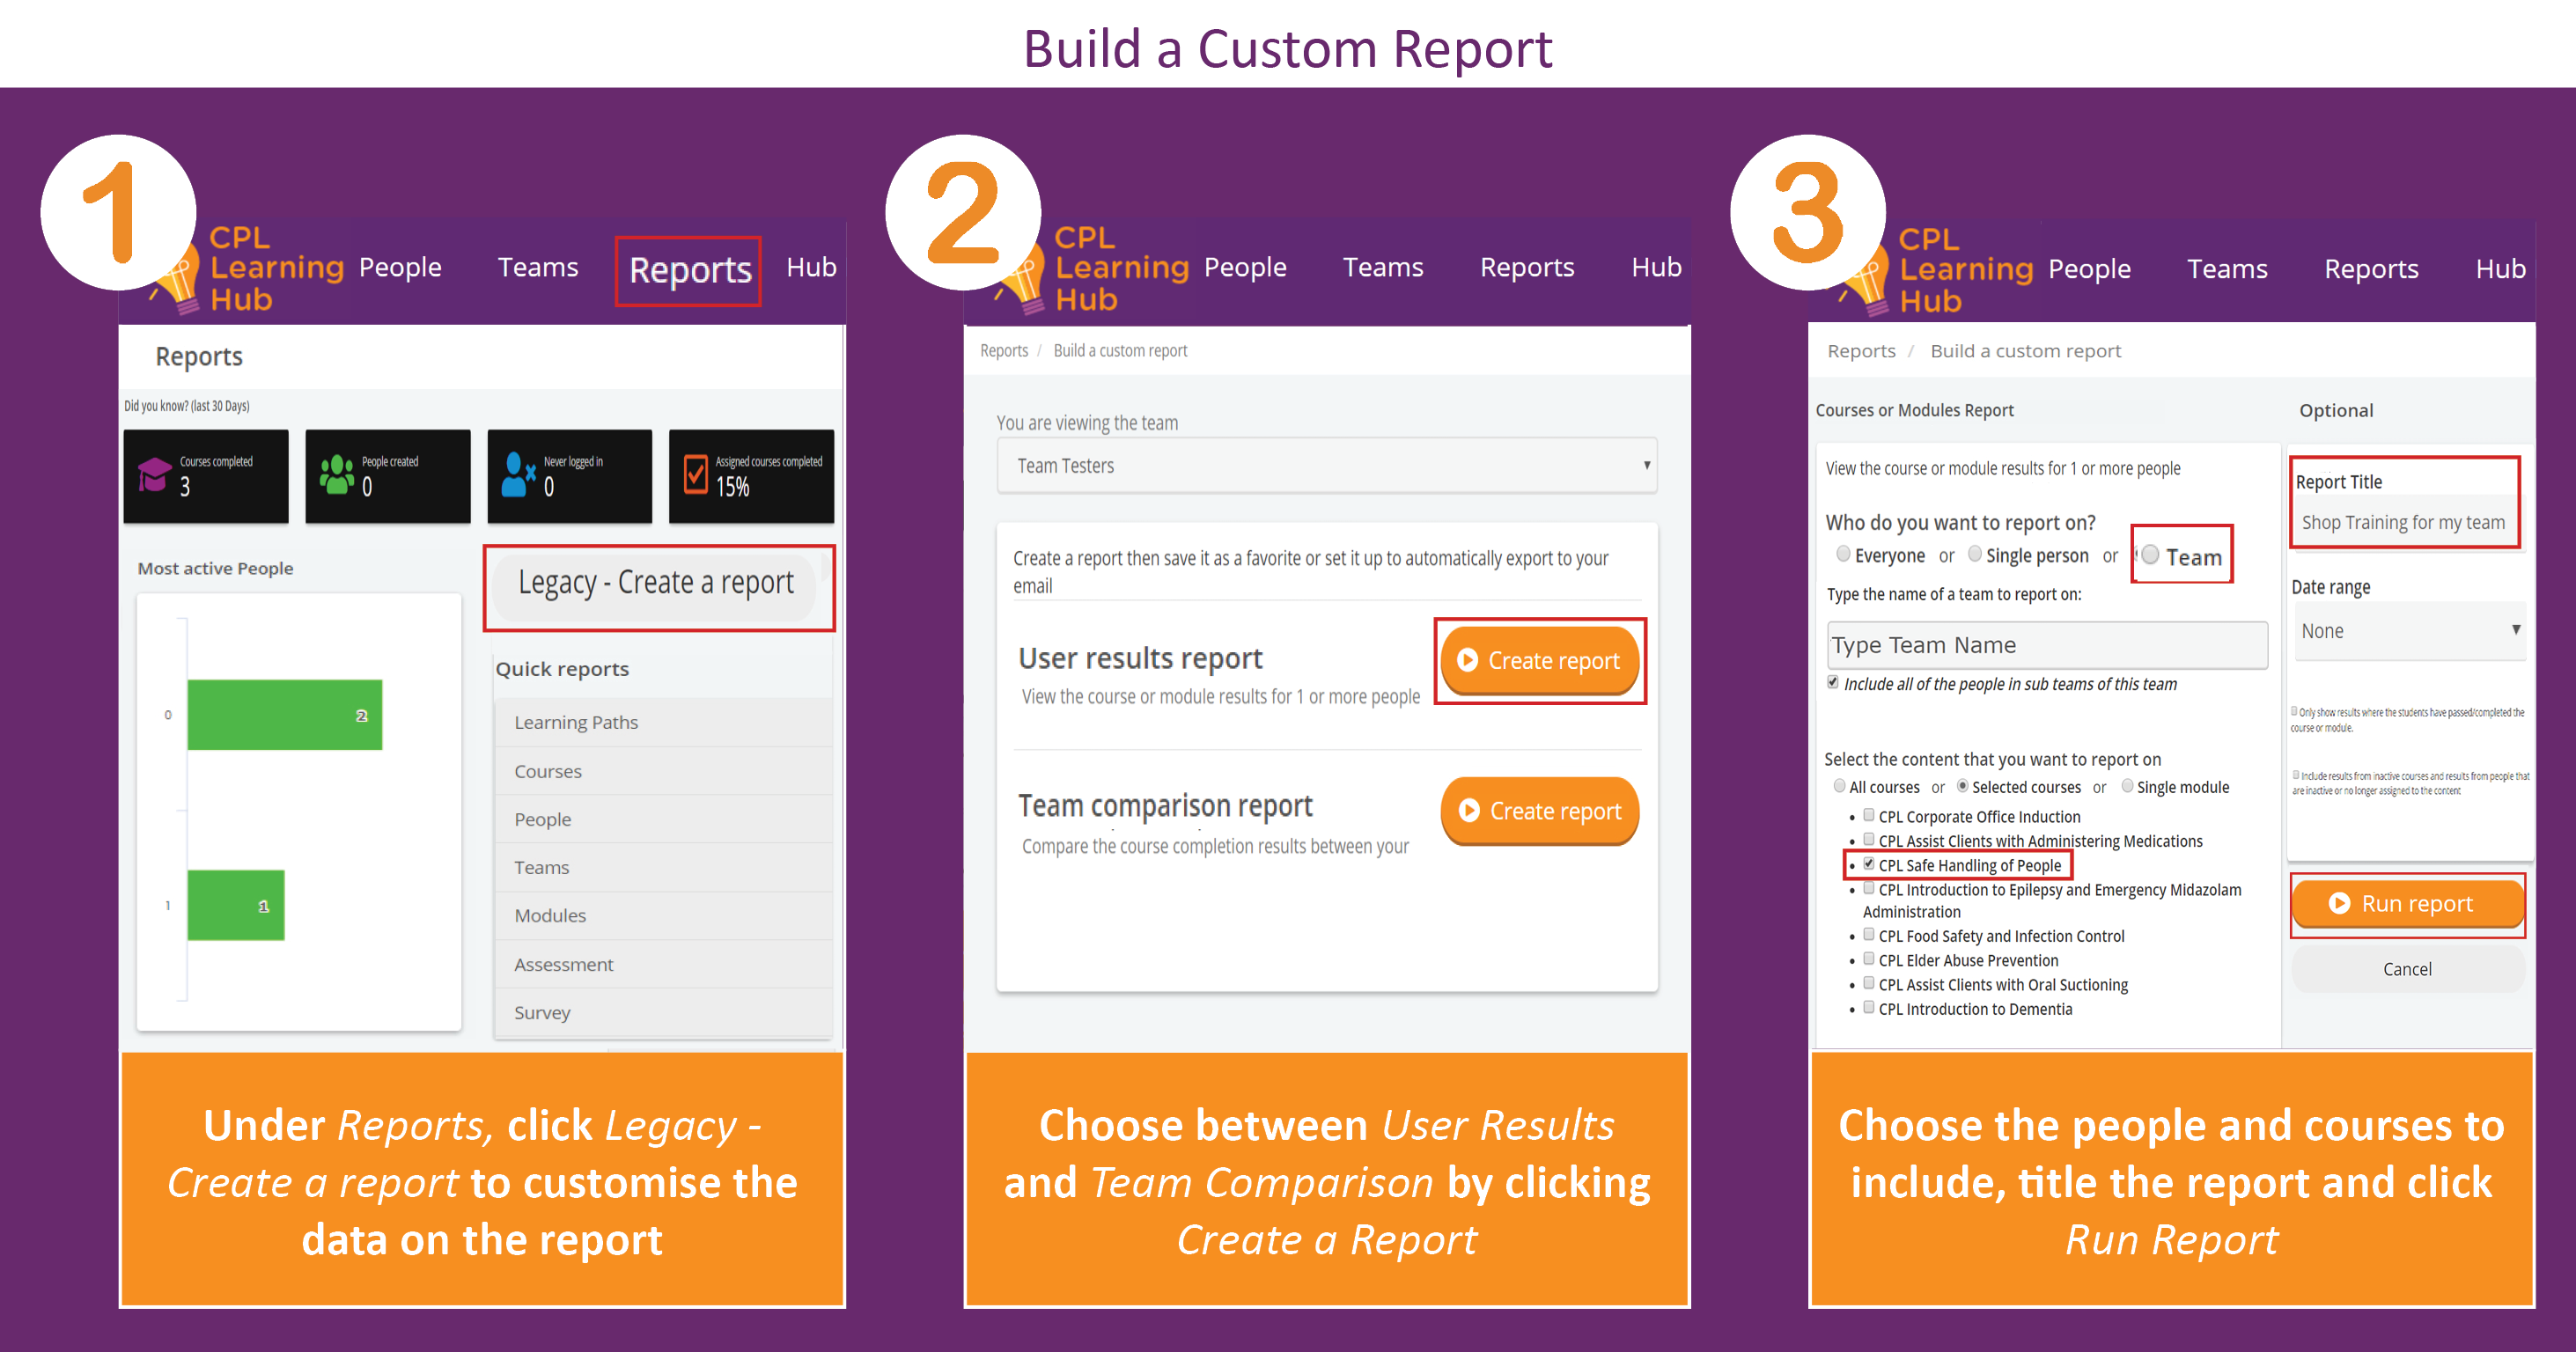 Screenshot displaying instructions for building a custom report